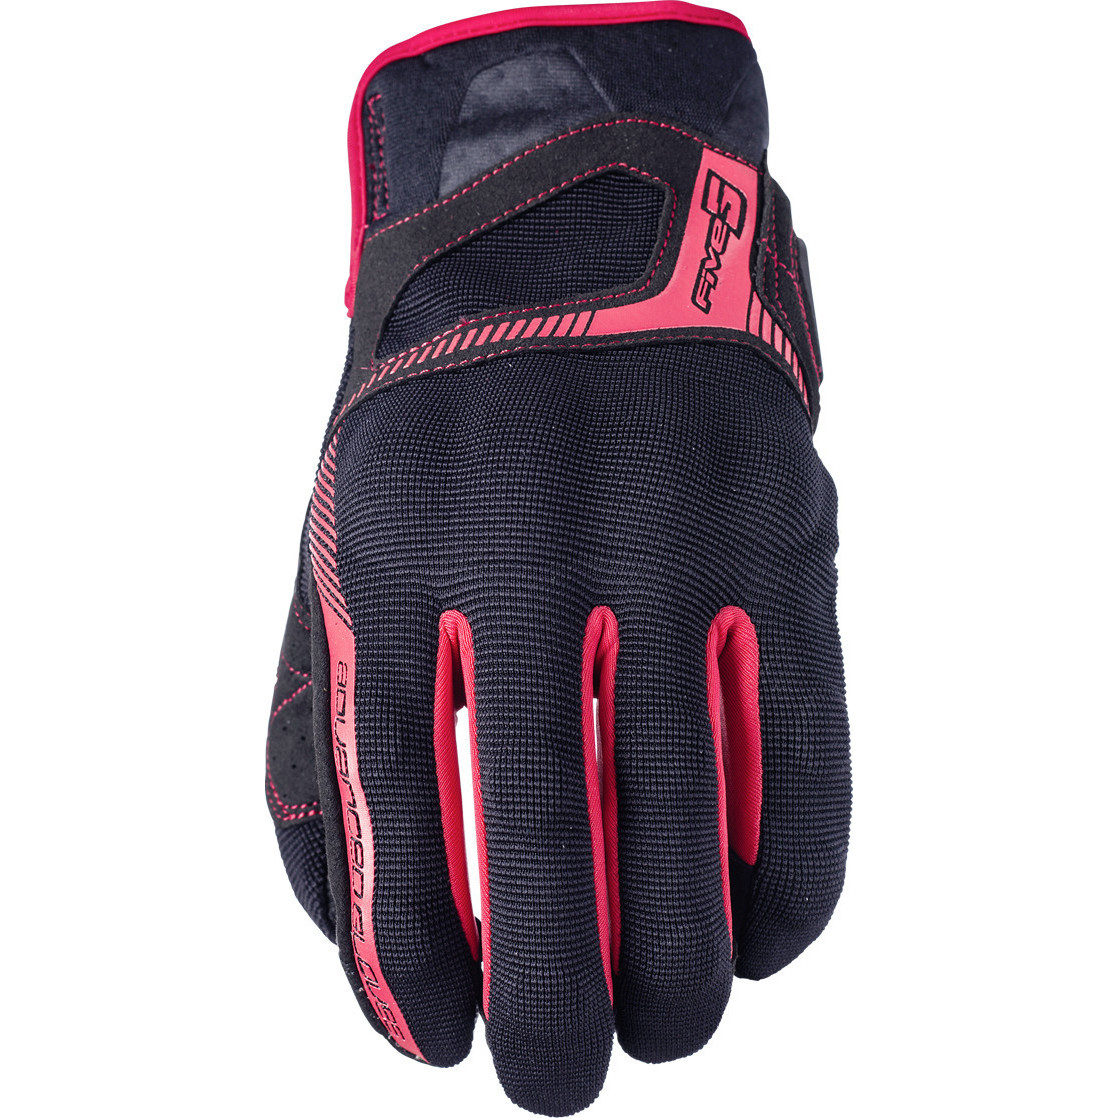 Five-RS3-Motorcycle-Gloves-Motorbike-Bike-Armour-Urban-Touch-Screen-GhostBikes thumbnail 6